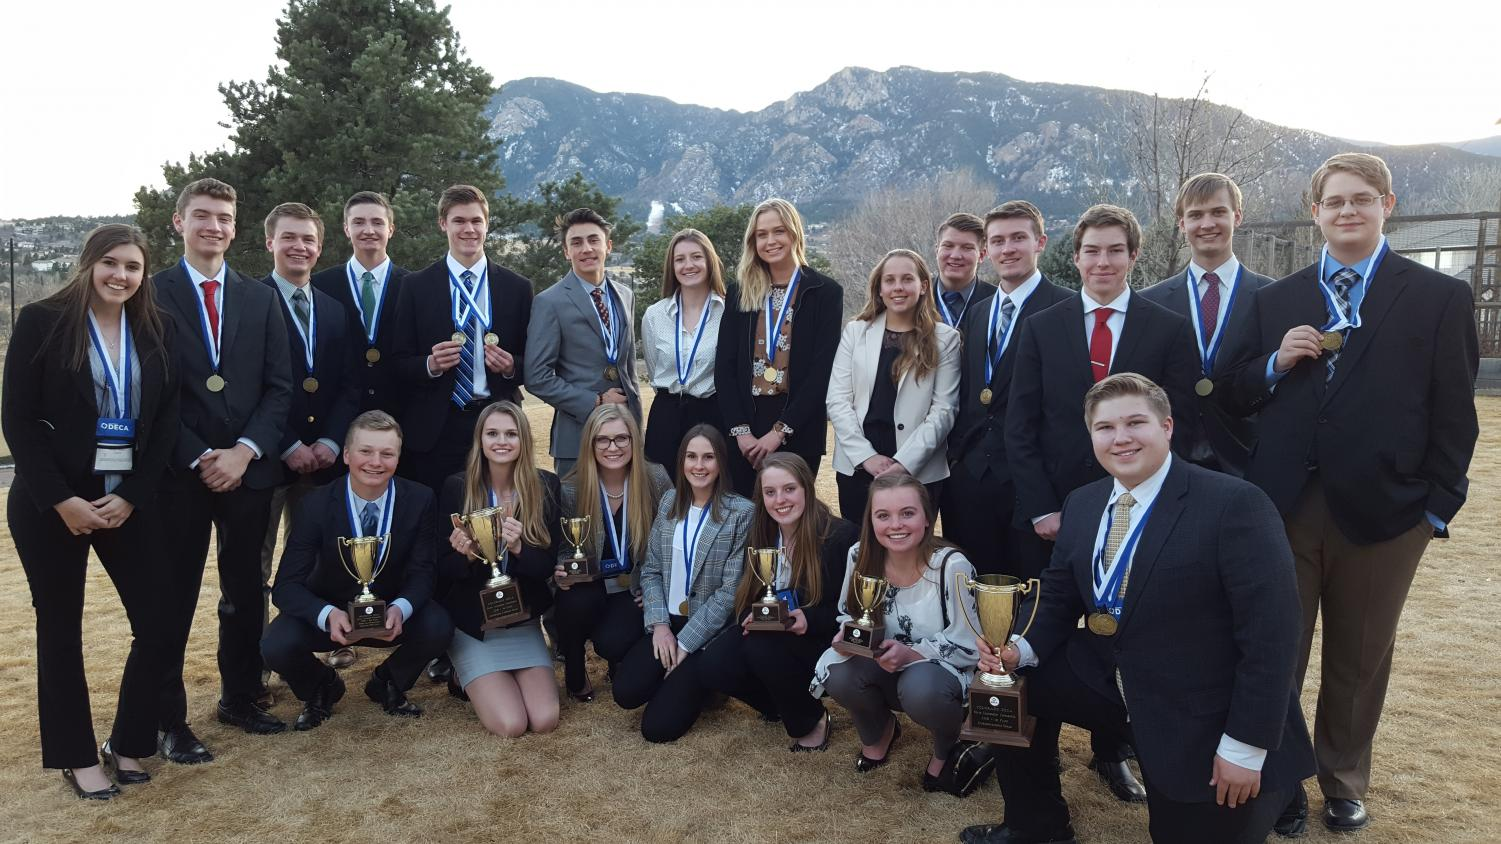 DECA students gather to show off their awards at the conclusion of State competition at the Broadmoor Hotel in Colorado Springs.  Students competed for four days, February 24 - 27.